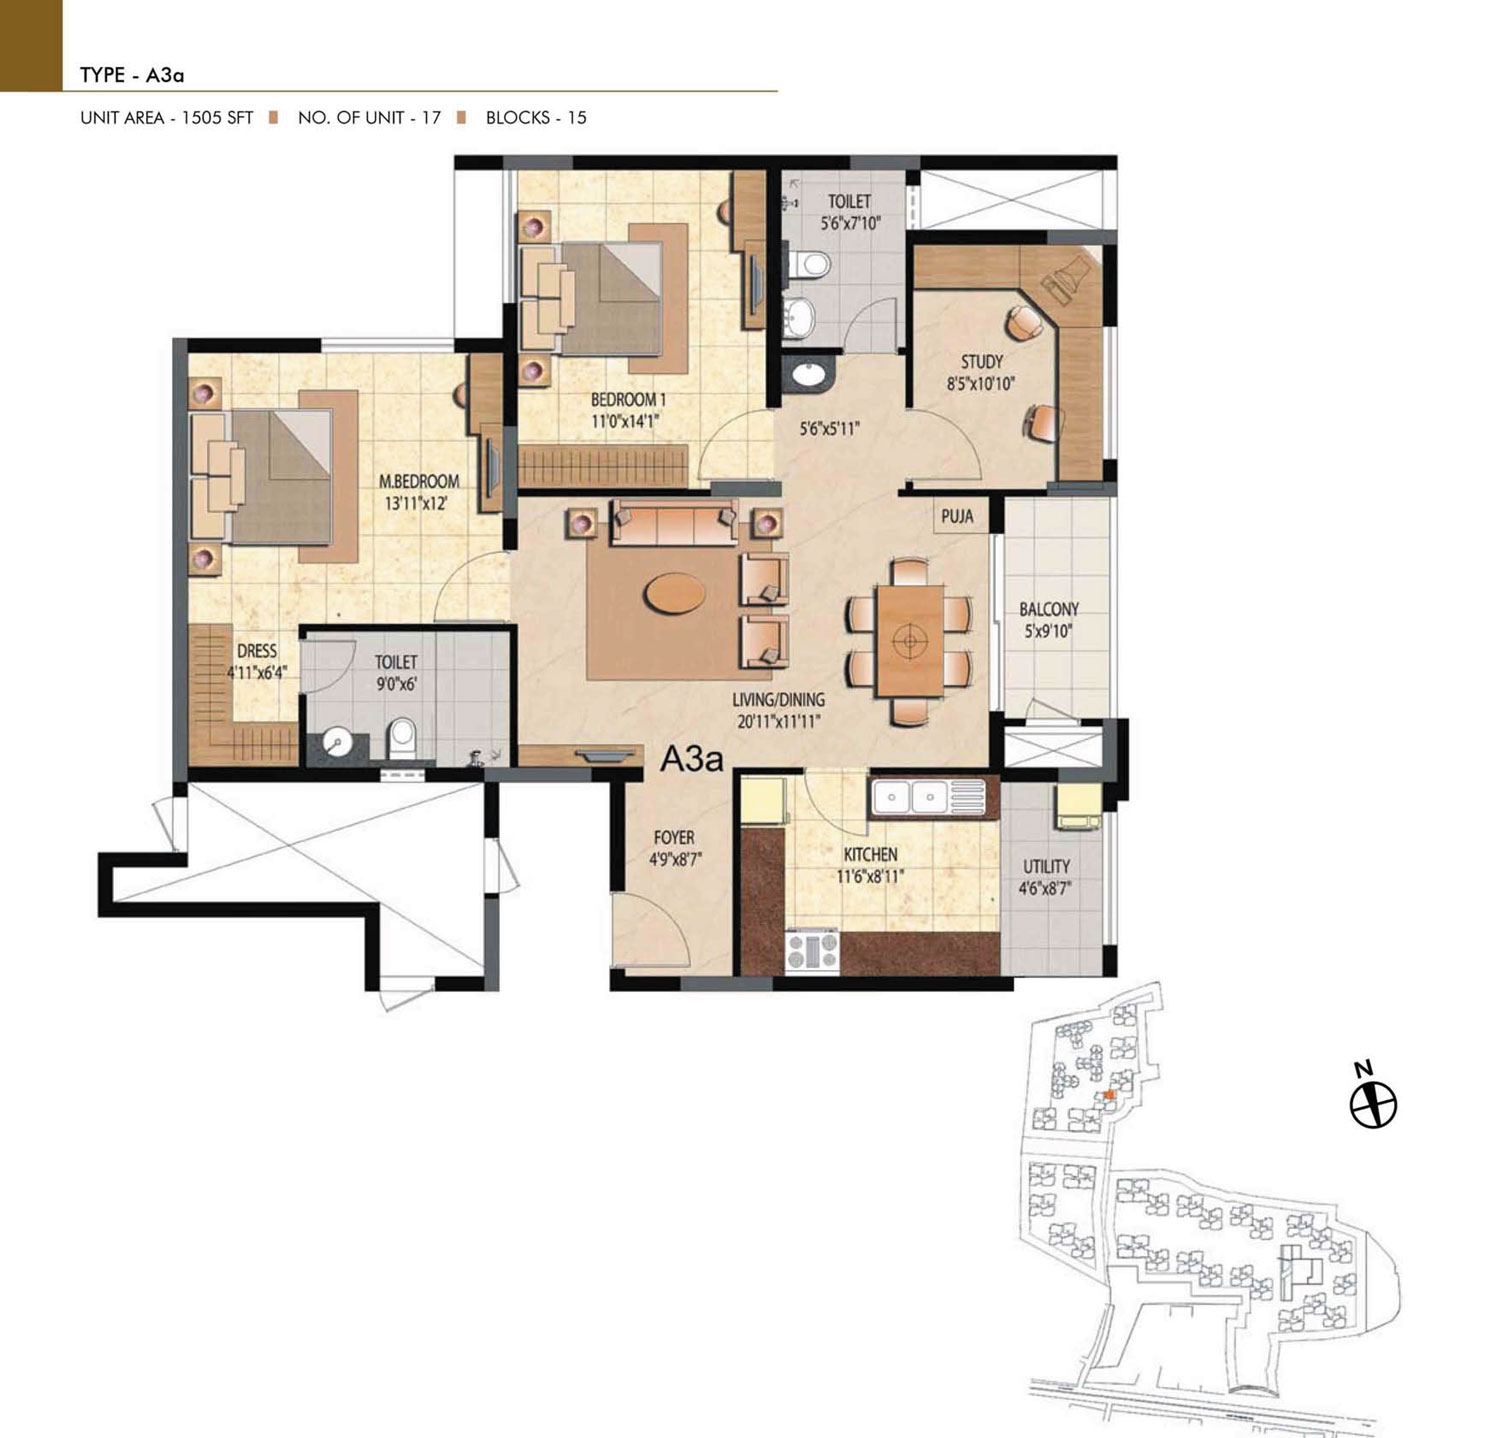 Type A3A - 2 Bed - 1505 Sq Ft